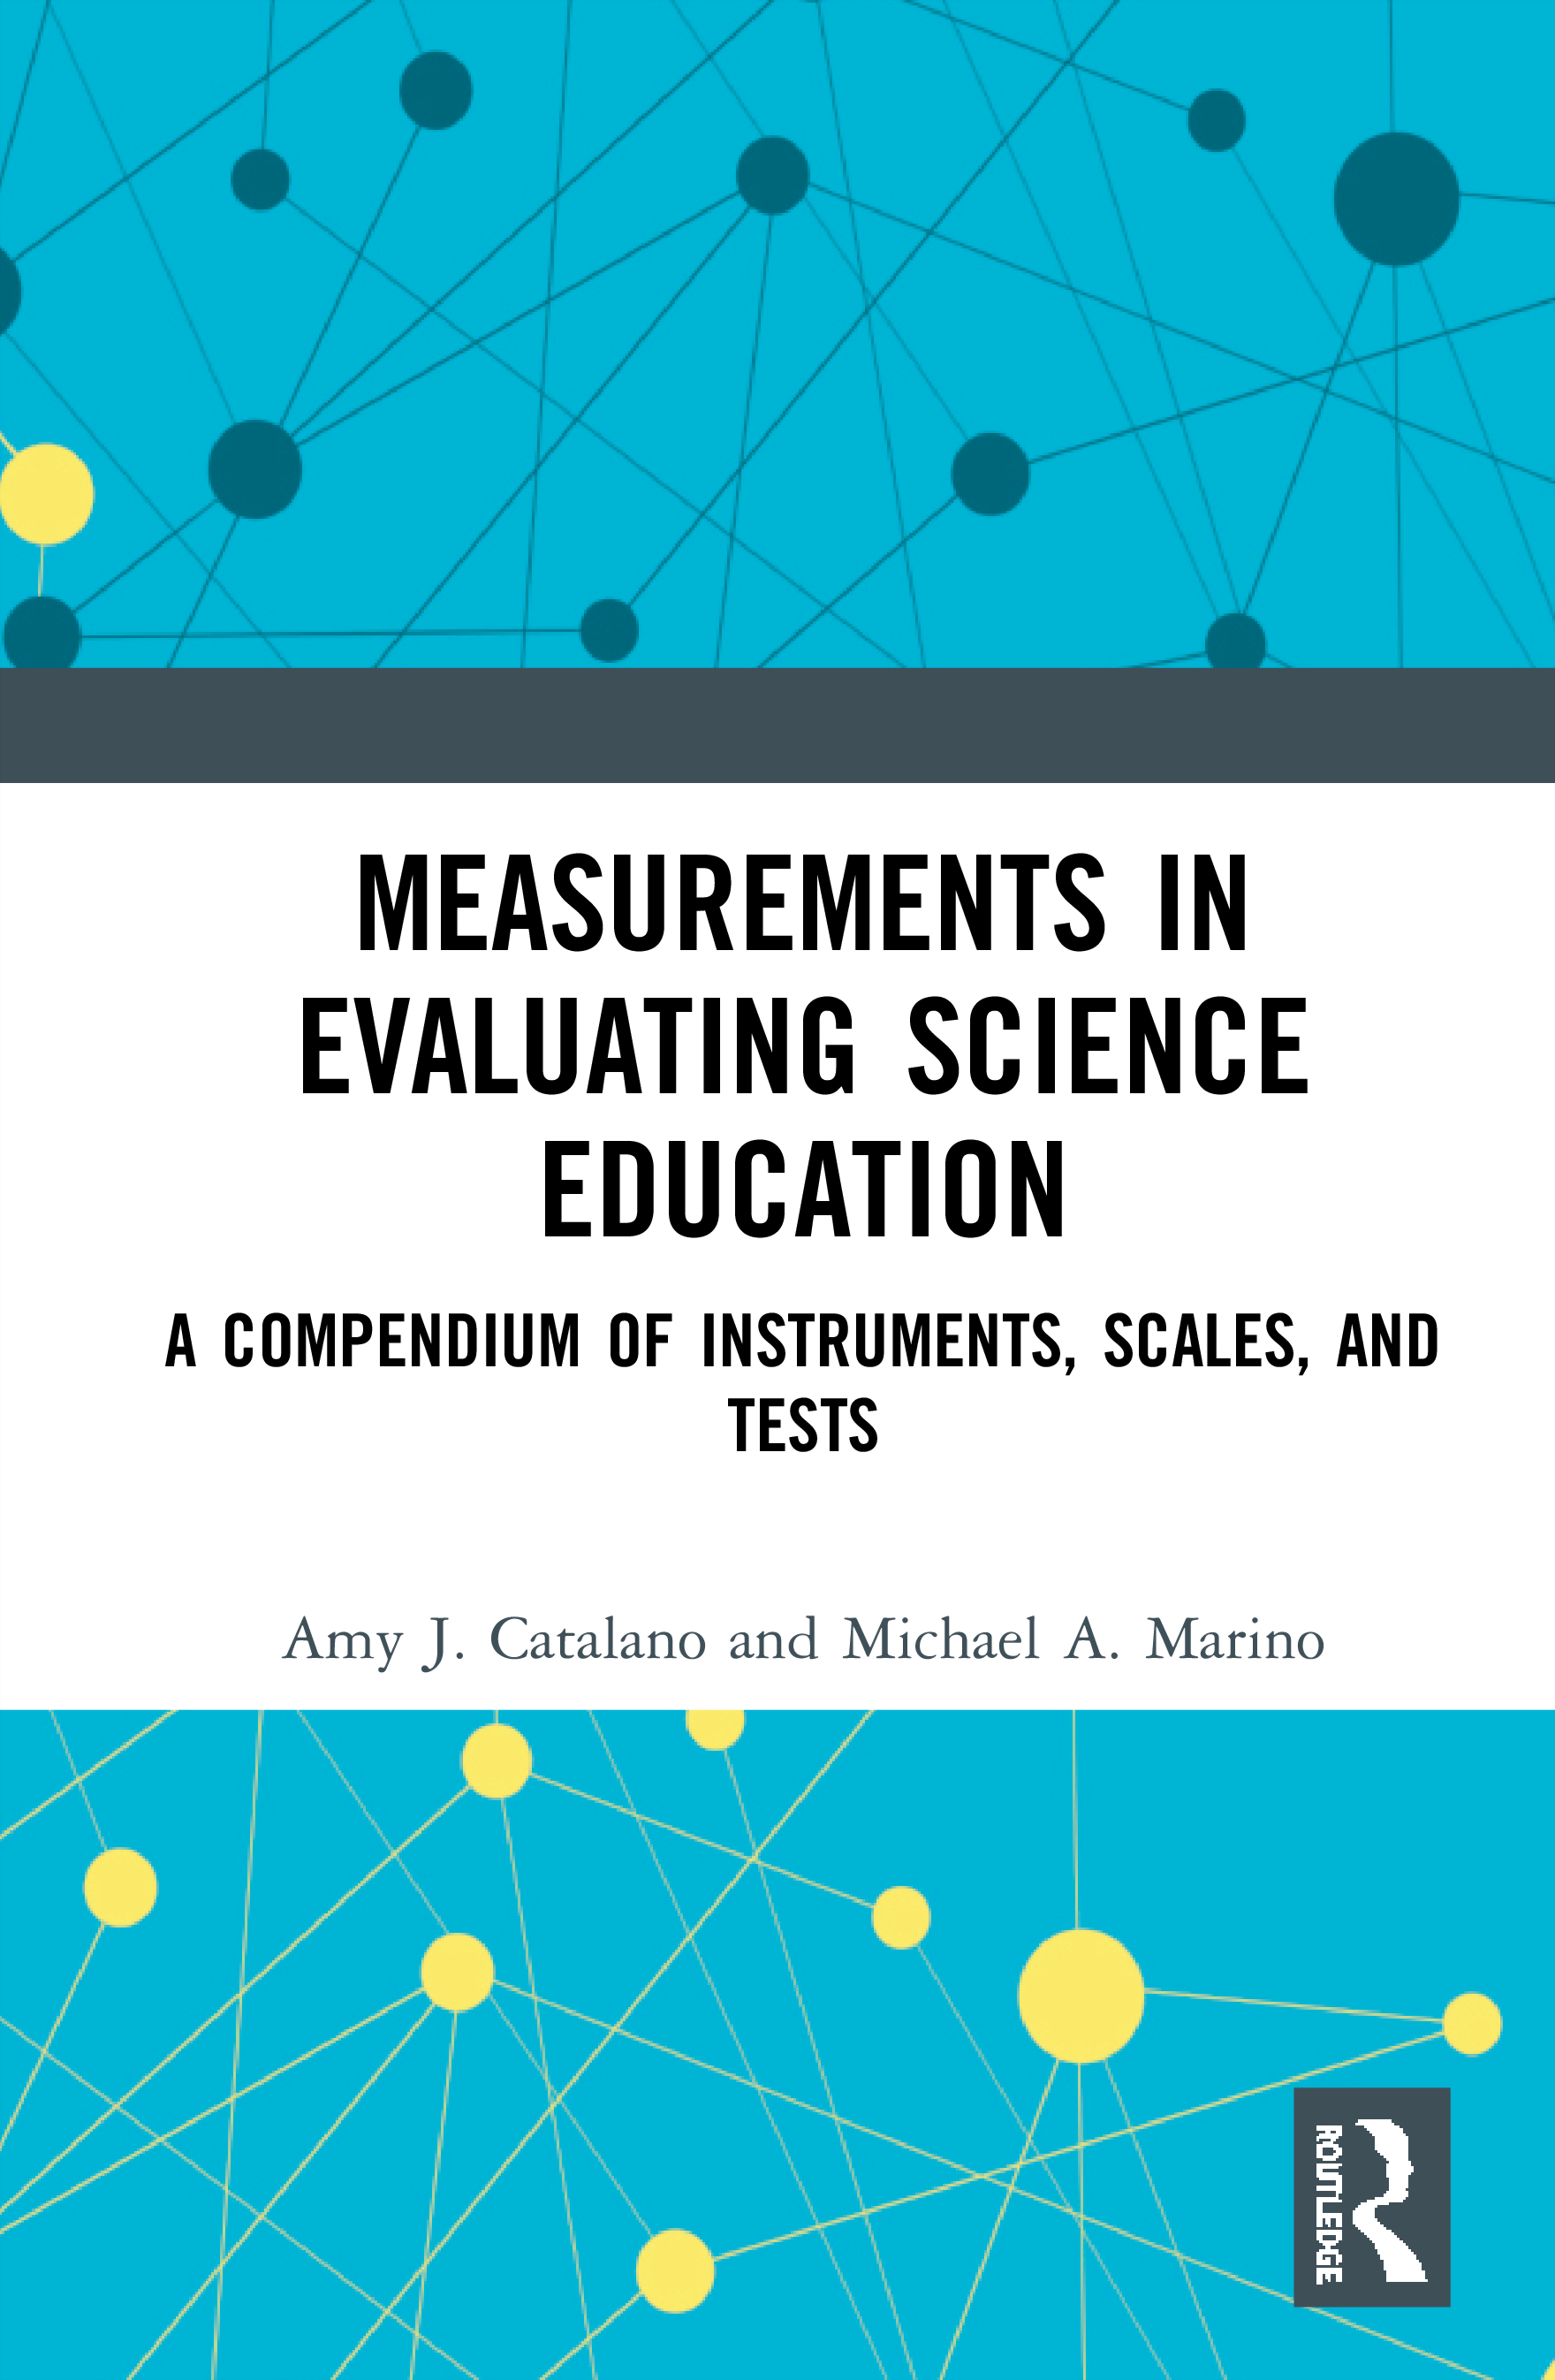 Measurements in Evaluating Science Education: A Compendium of Instruments, Scales, and Tests book cover